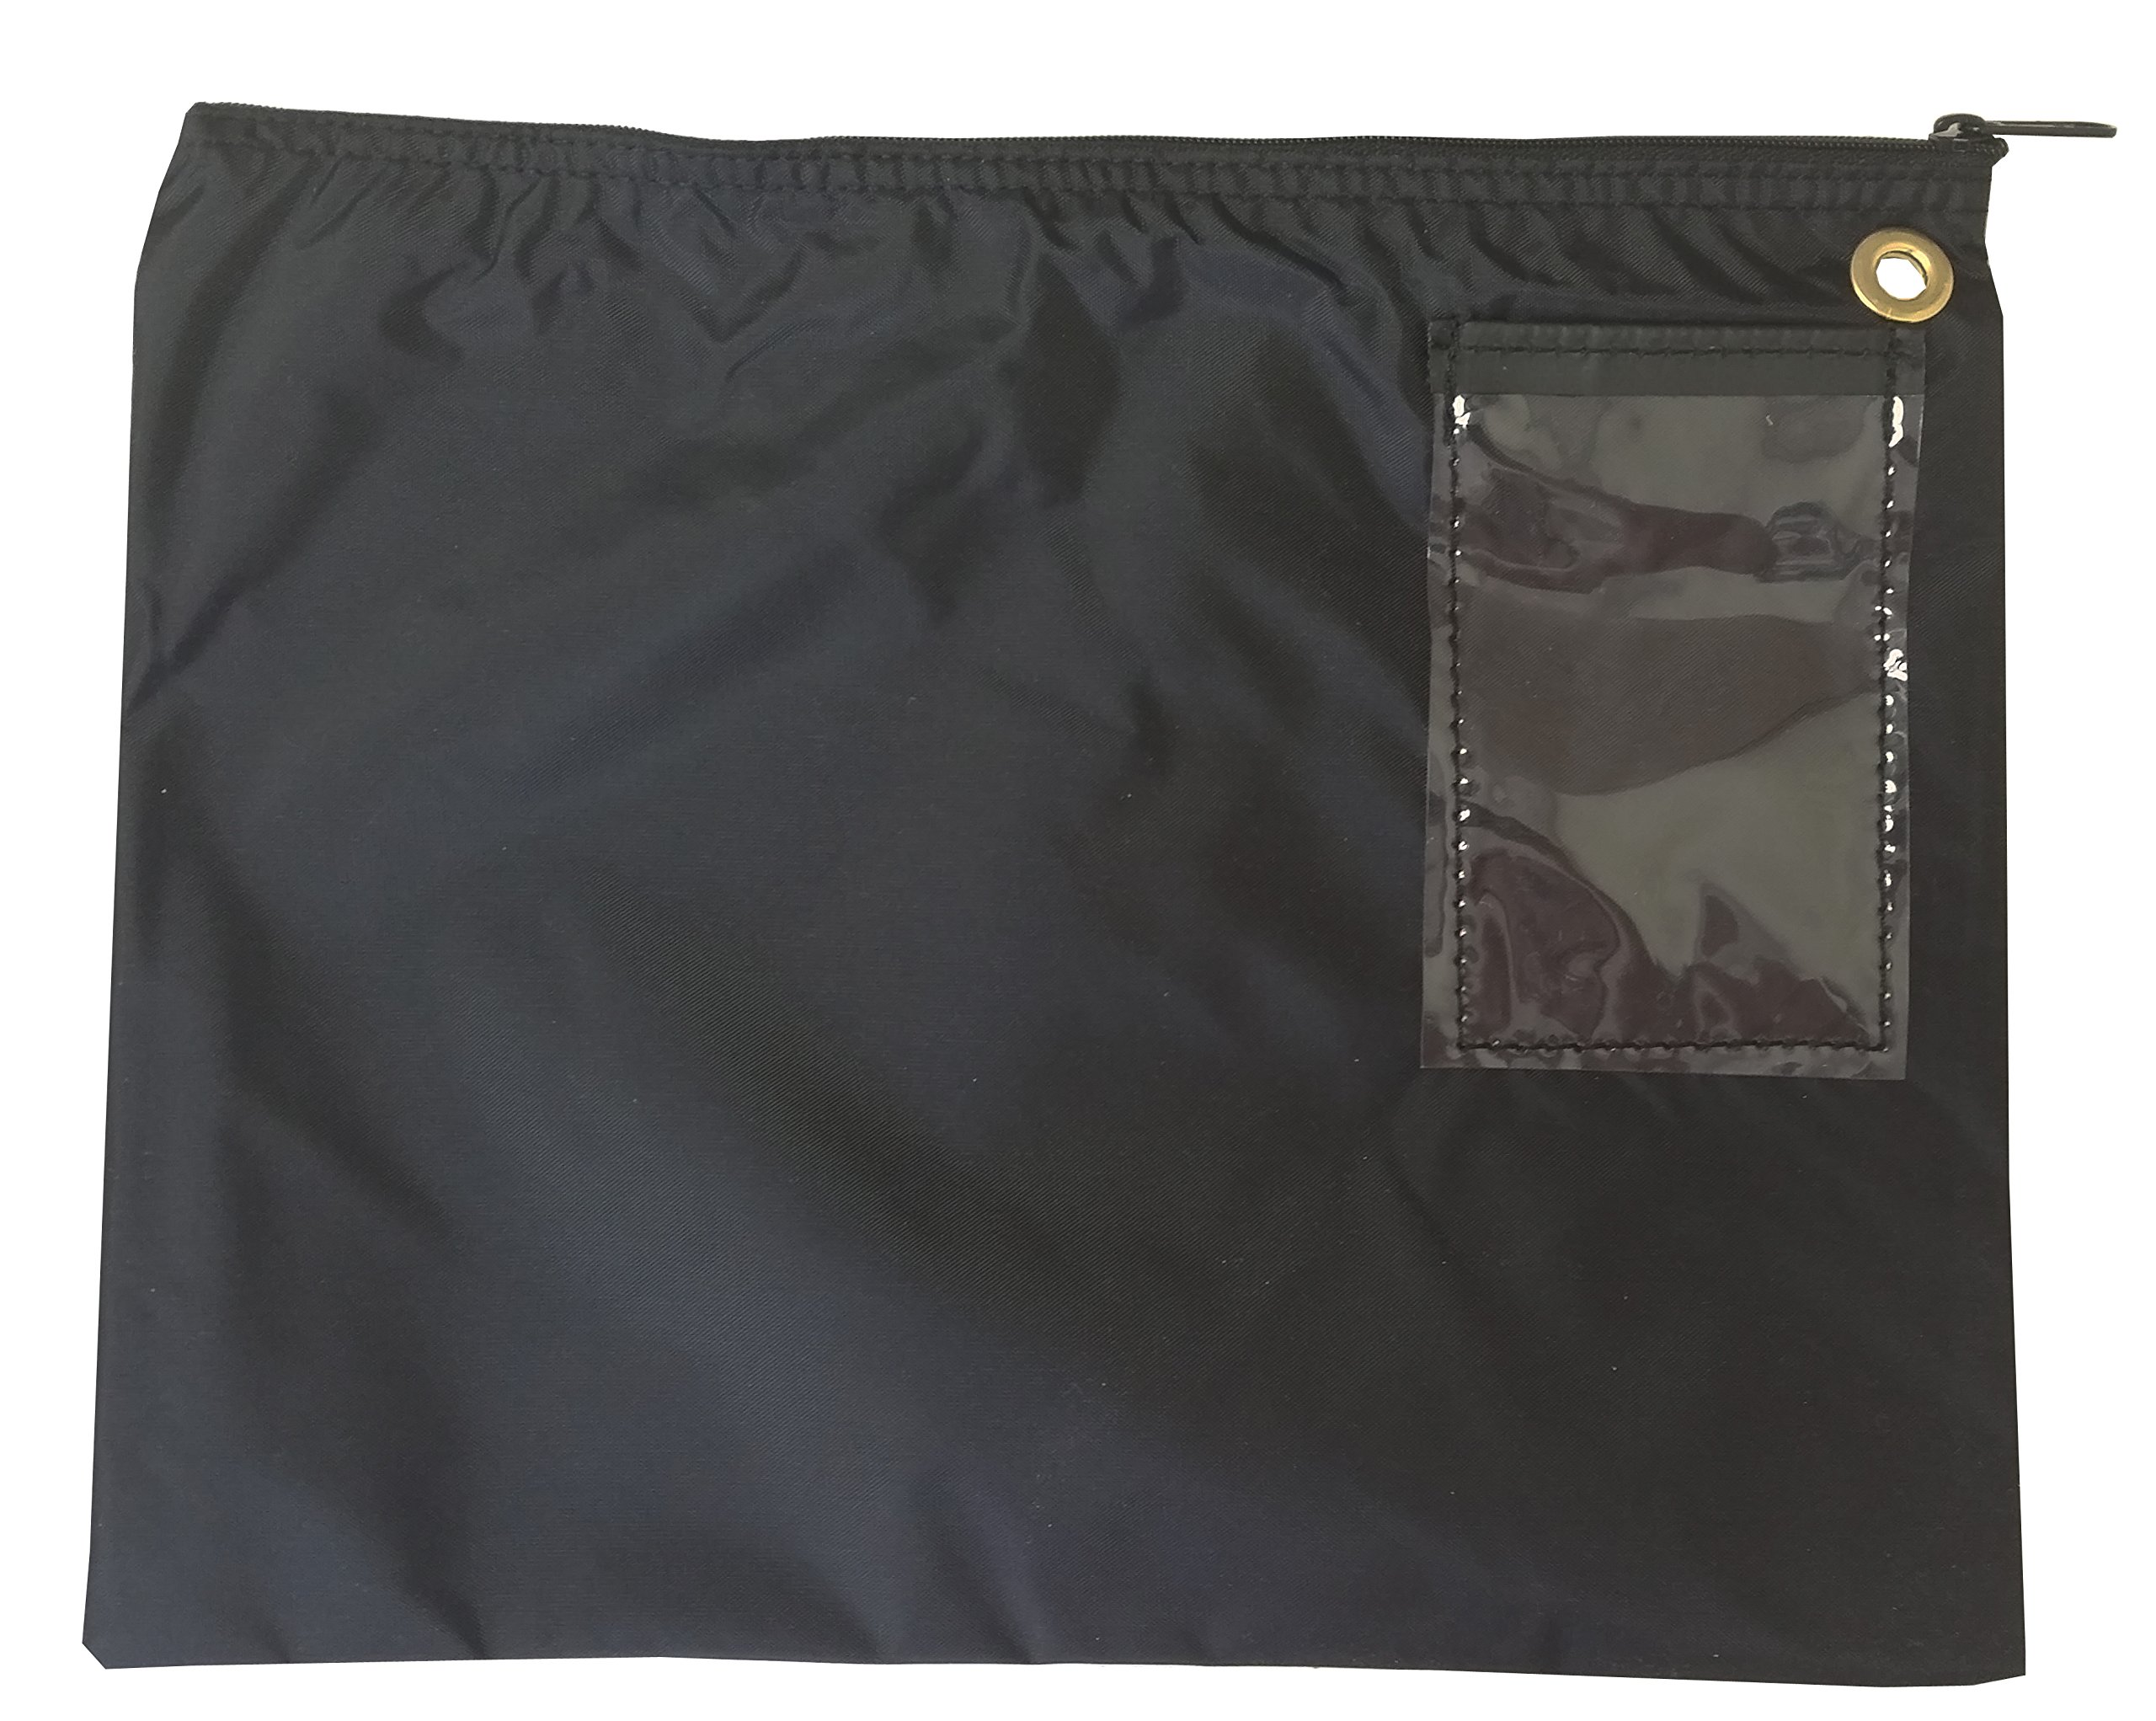 Interoffice Mailer 200 Denier Transit Sack Zipper Bag Black (18x14)